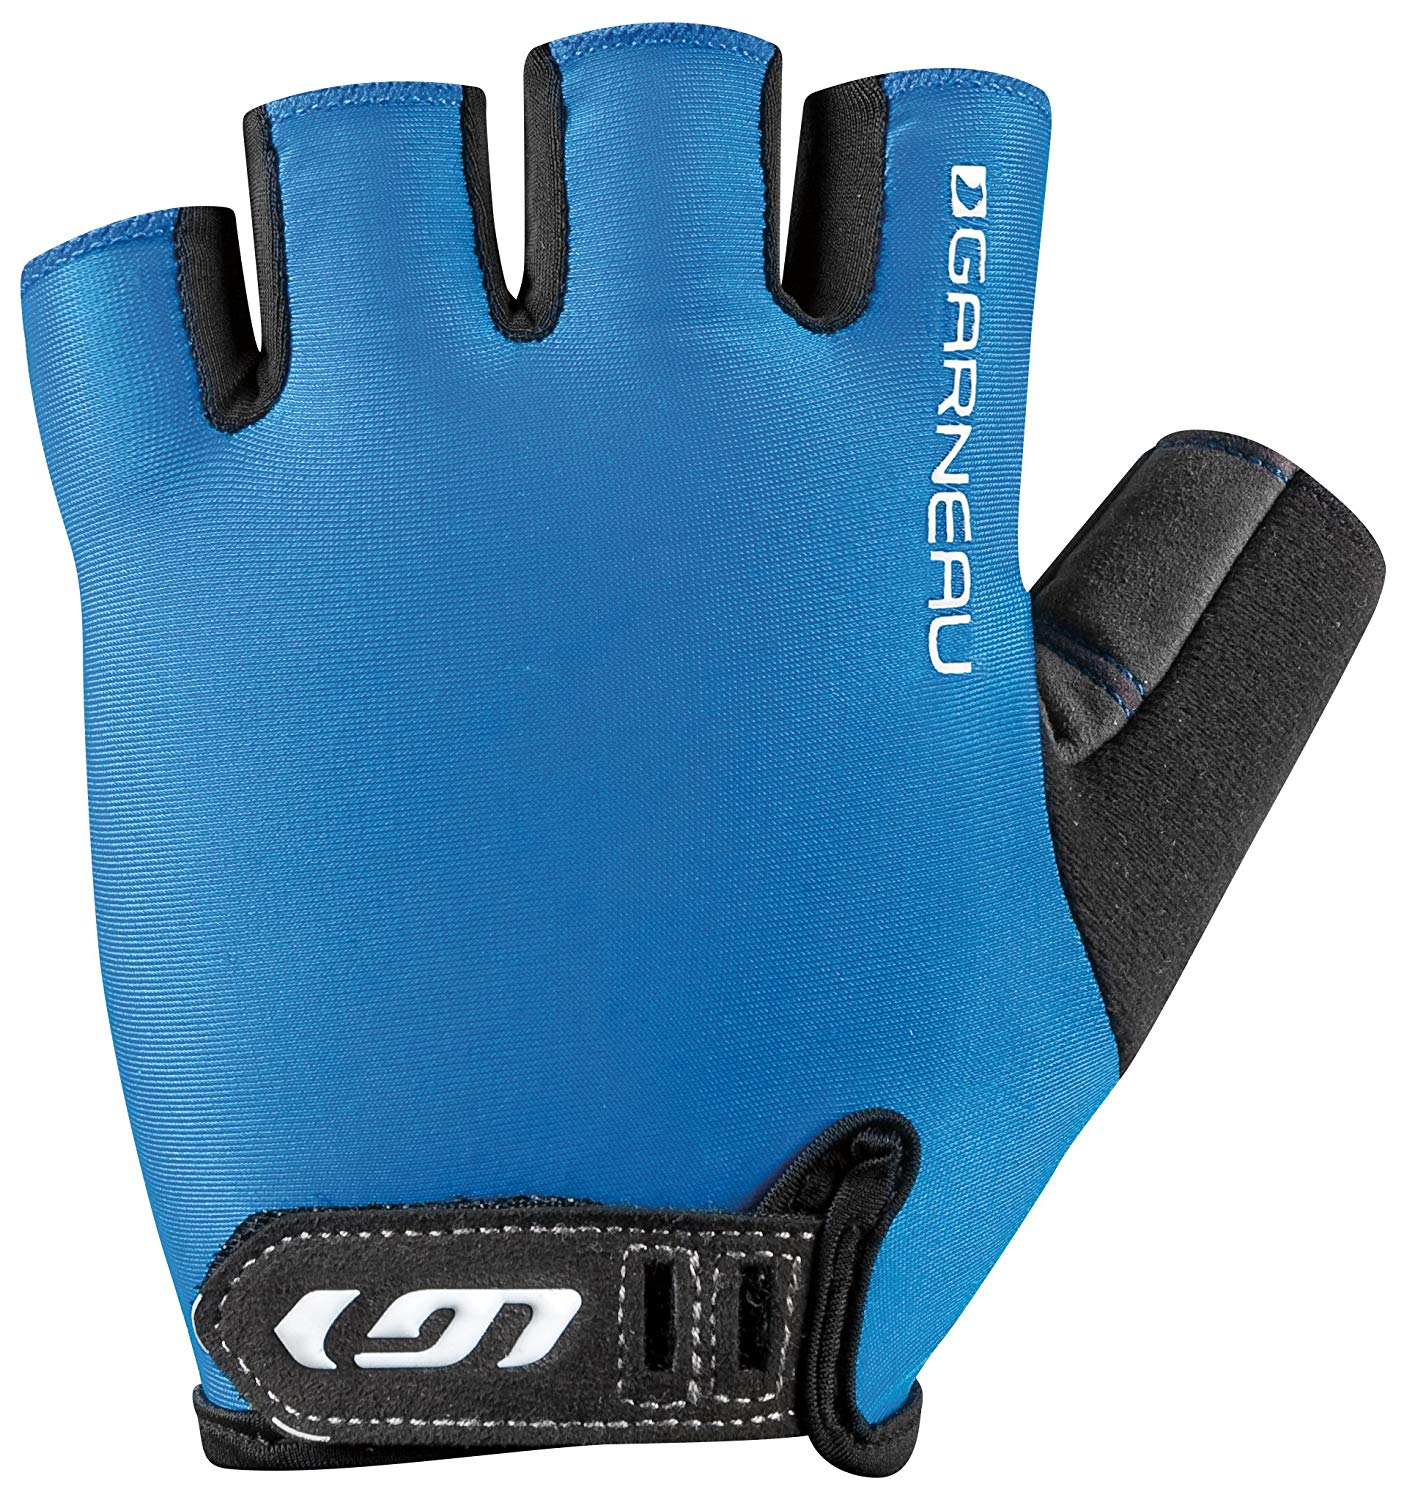 What's The Best Cycling Gloves For 2019? 5